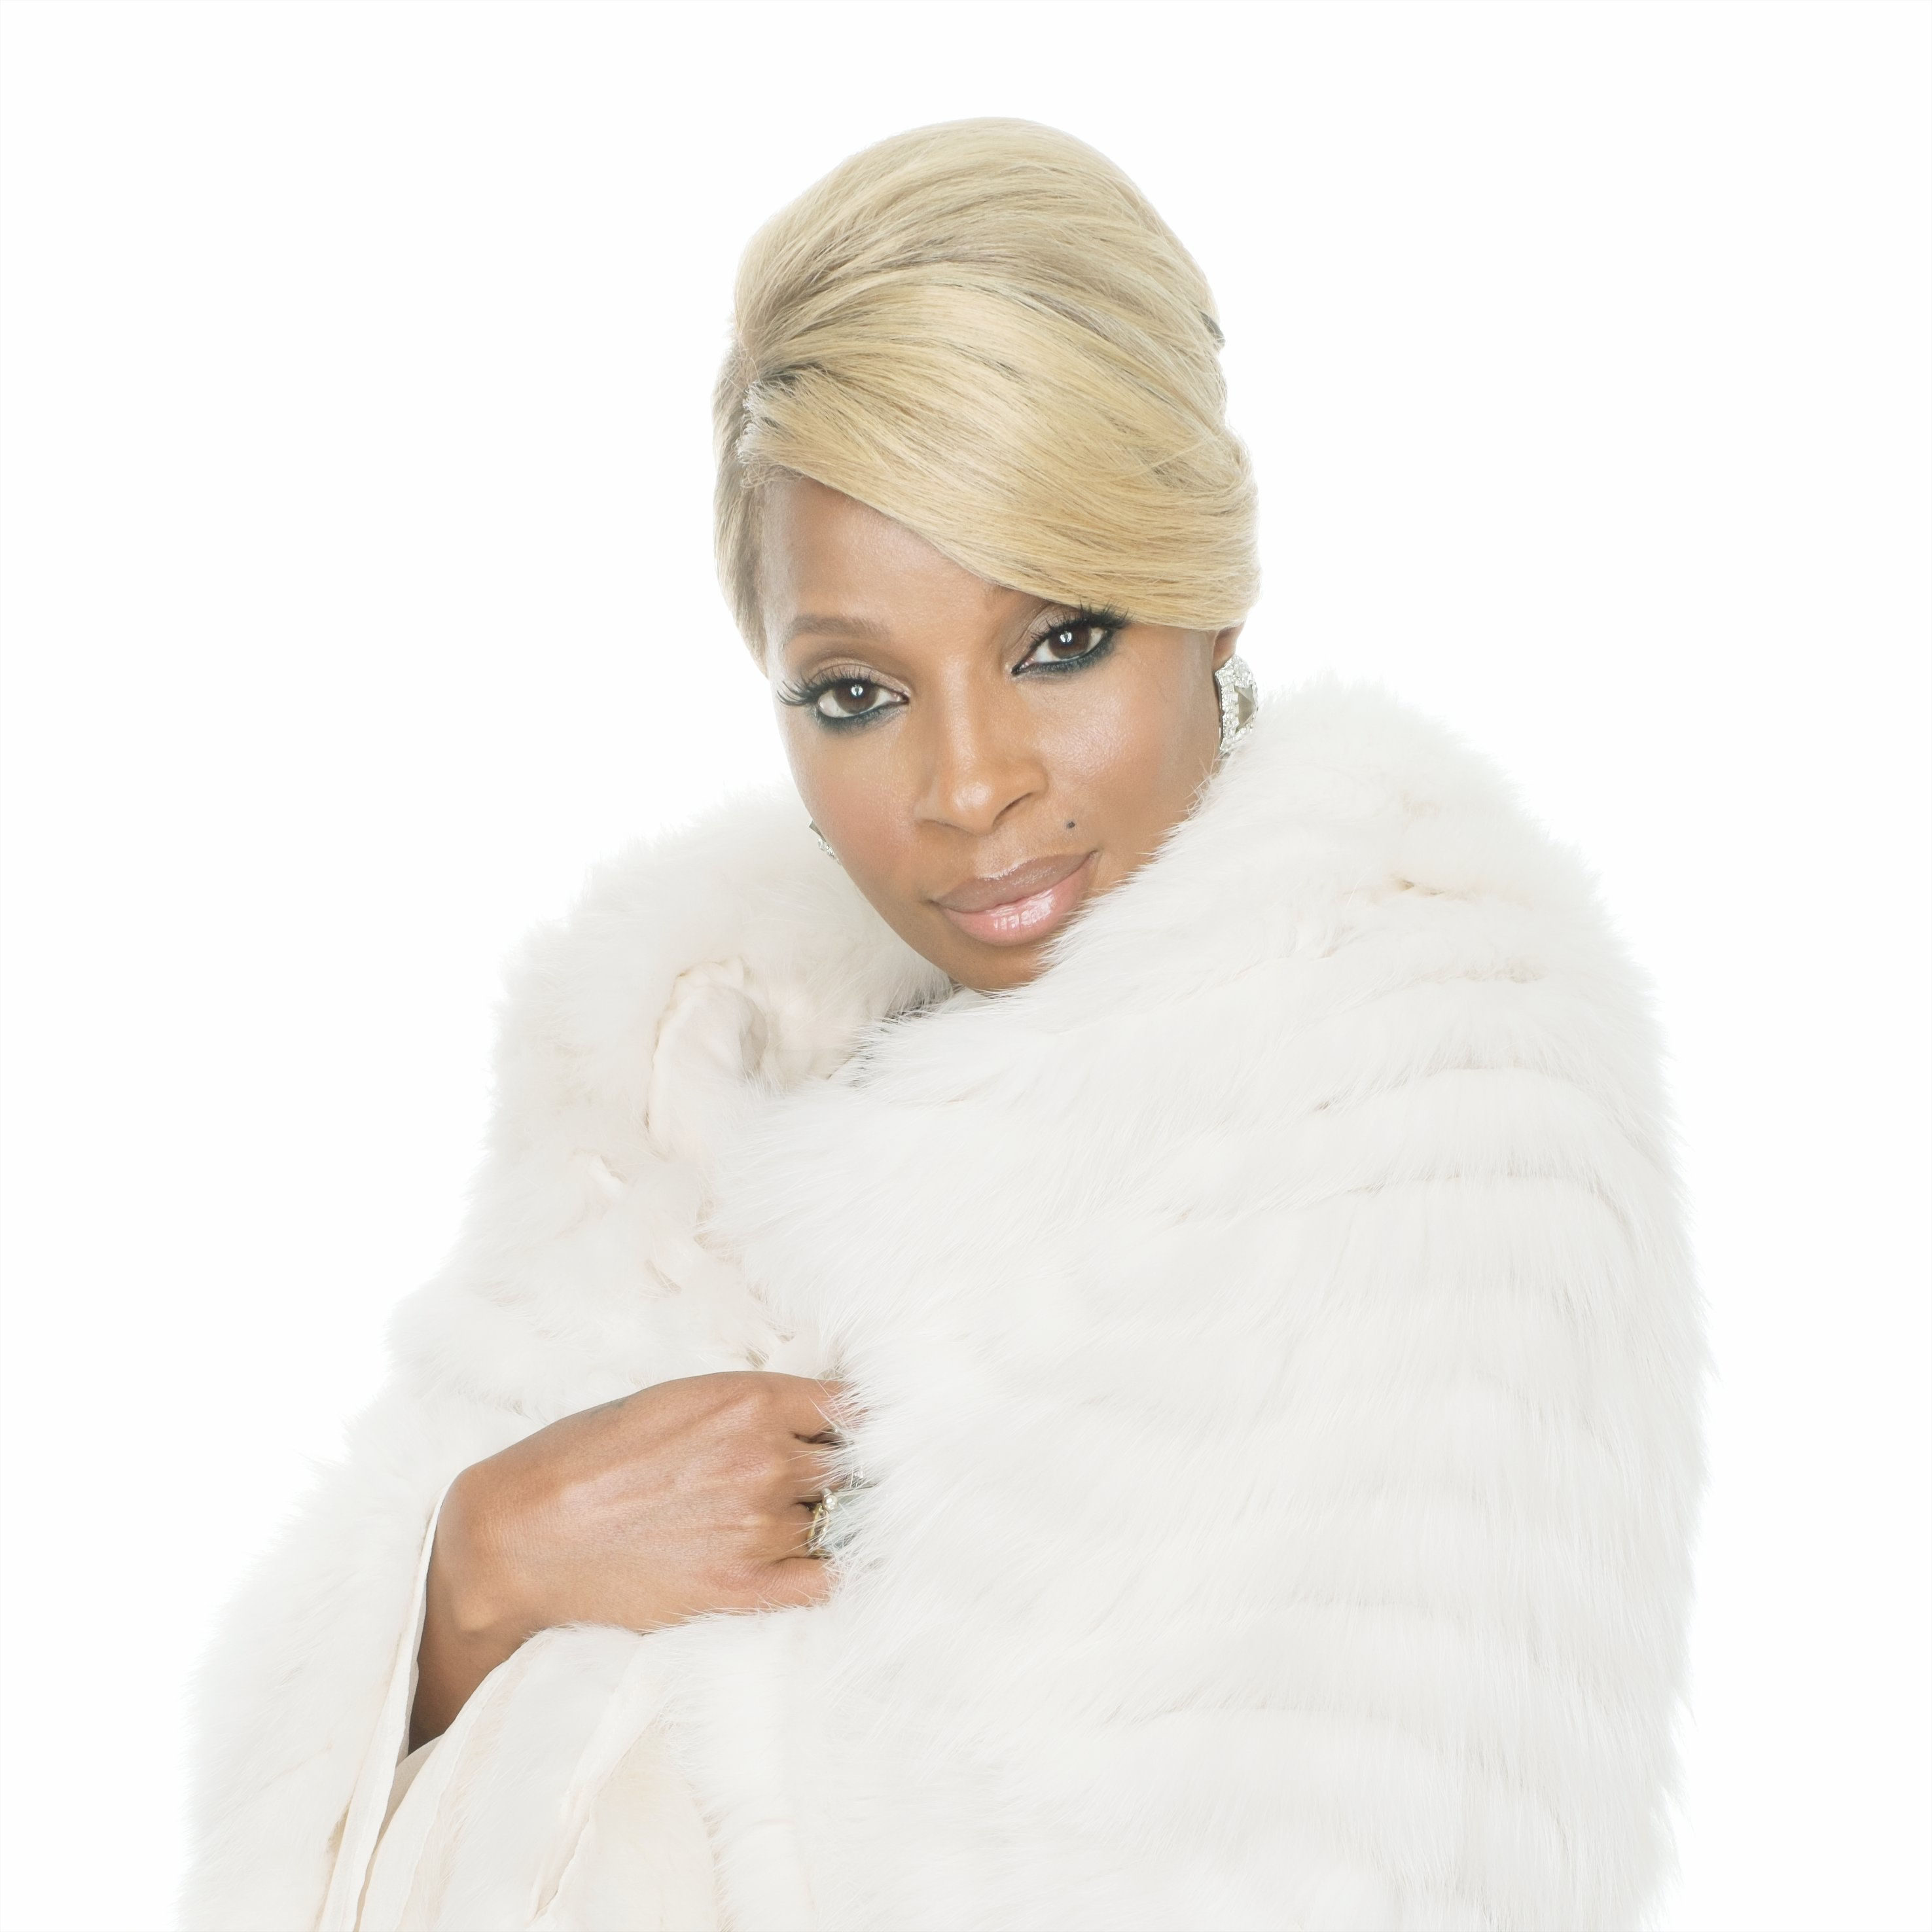 Mary J. Blige Brings Holiday Cheer To HSN With Special HSN